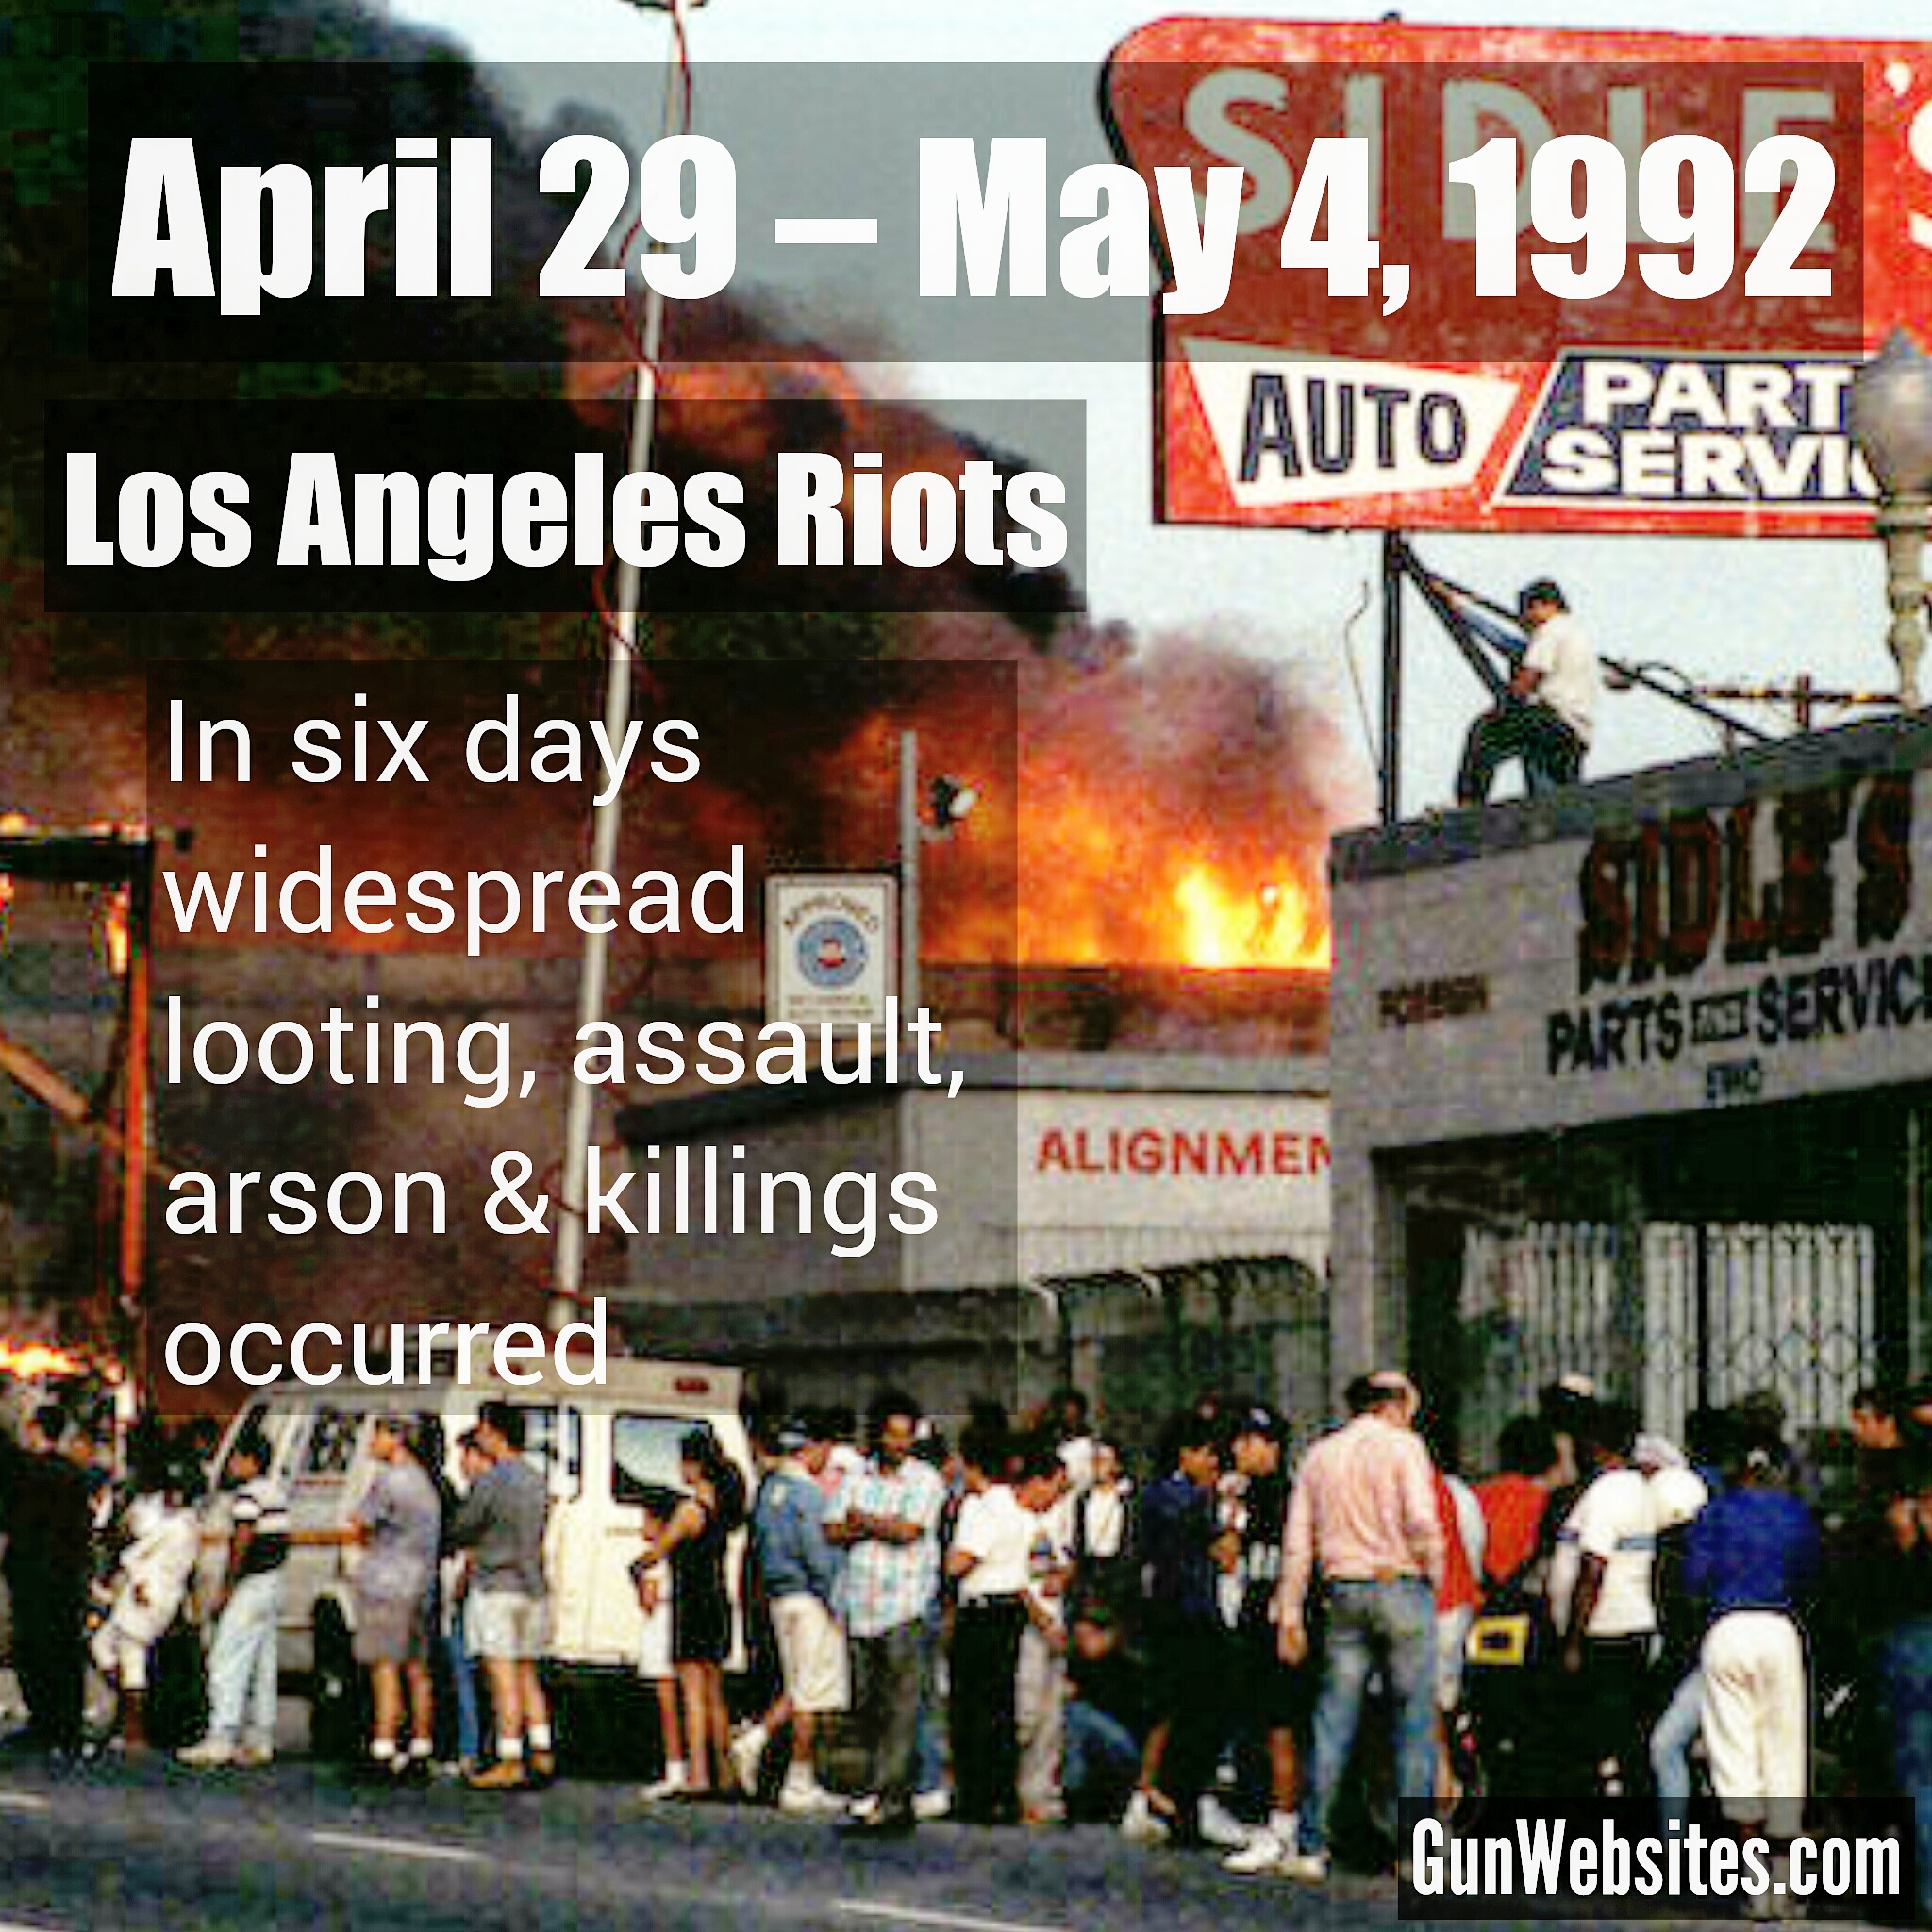 Over six days, widespread looting, assault, arson, and killings occurred in Los Angeles,